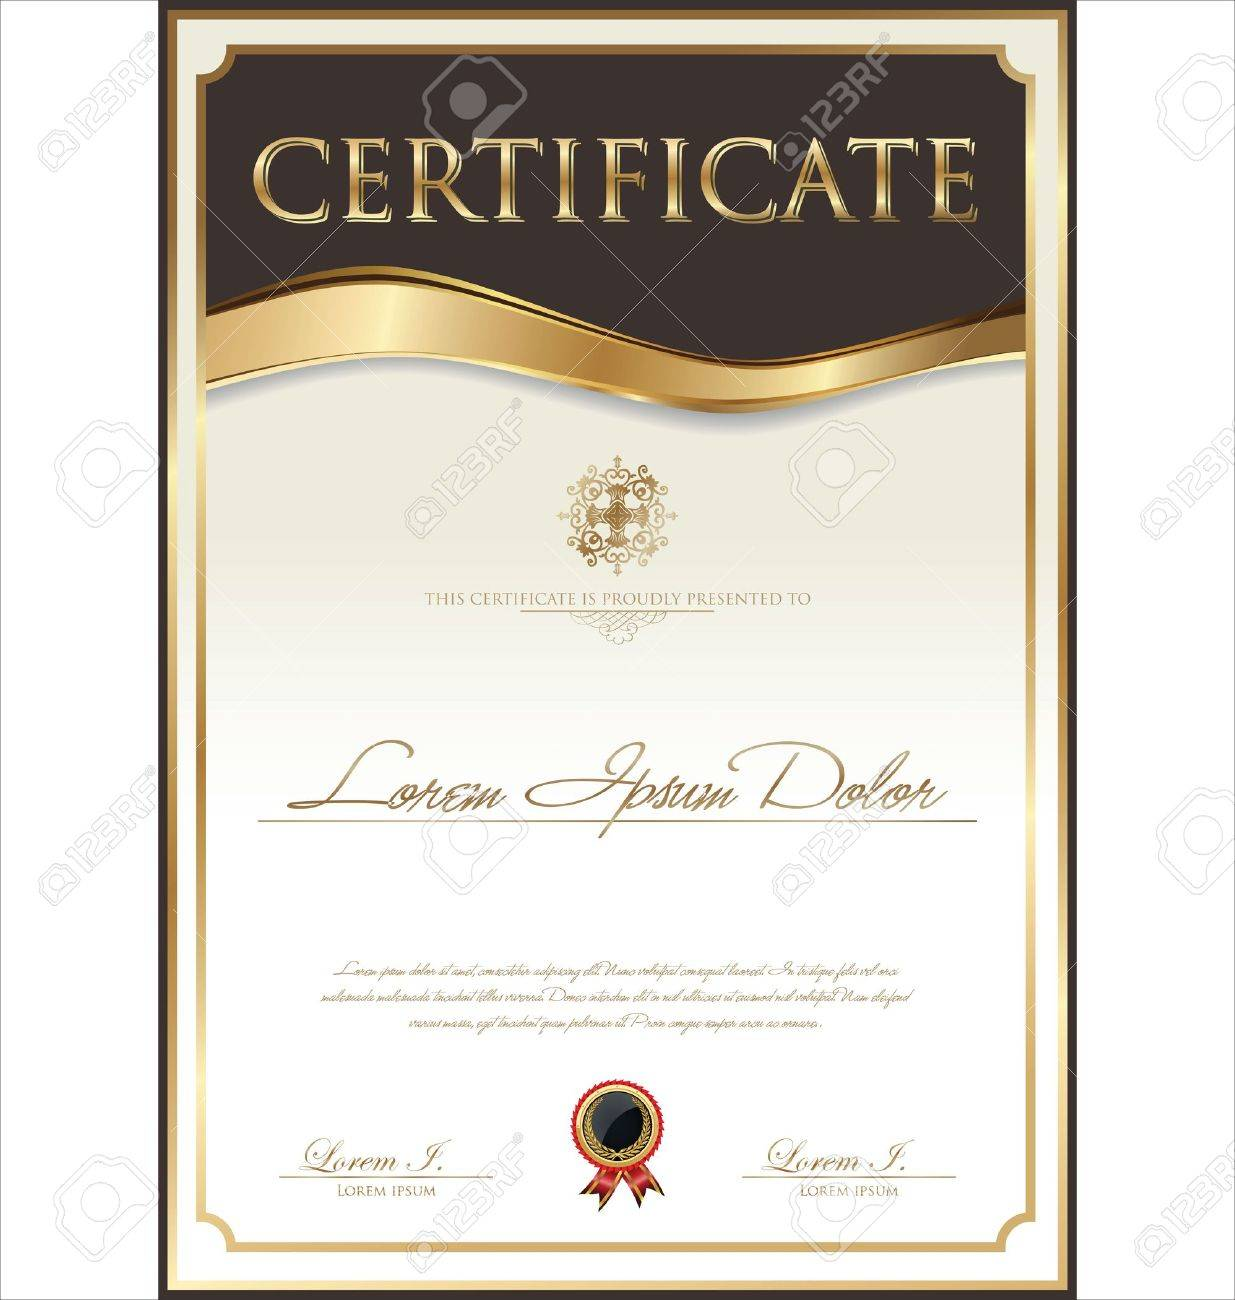 certificate frame stock photos images royalty certificate certificate frame certificate template illustration